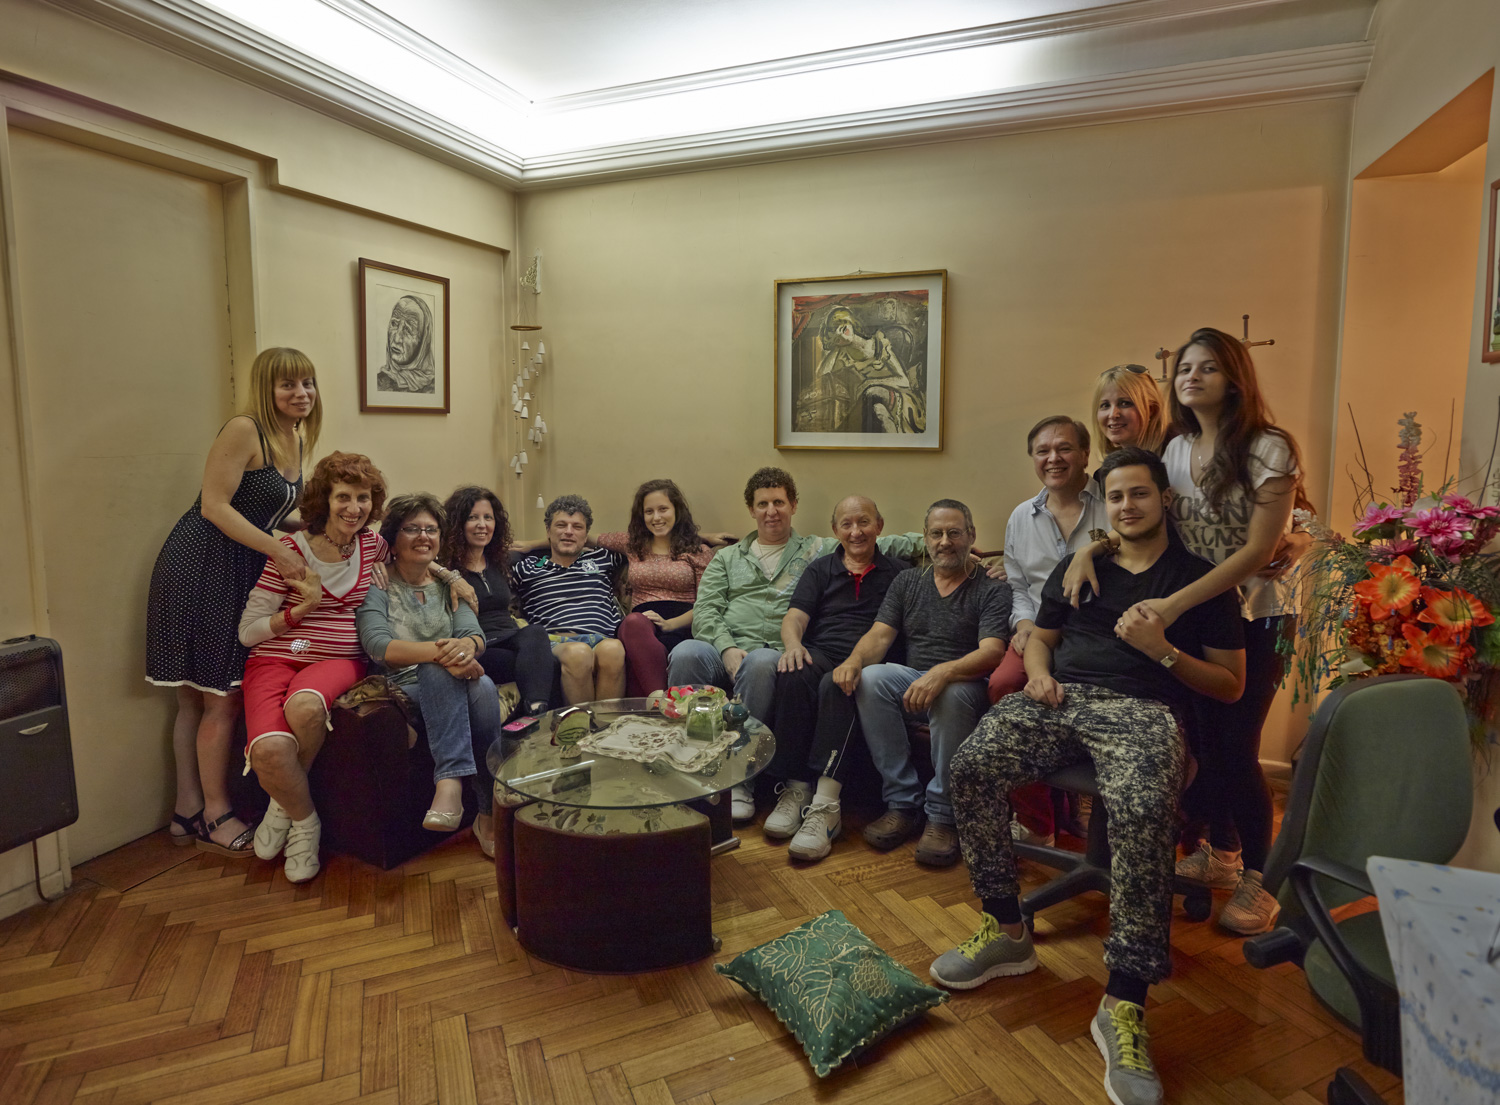 Family - Buenos Aires, March 2016